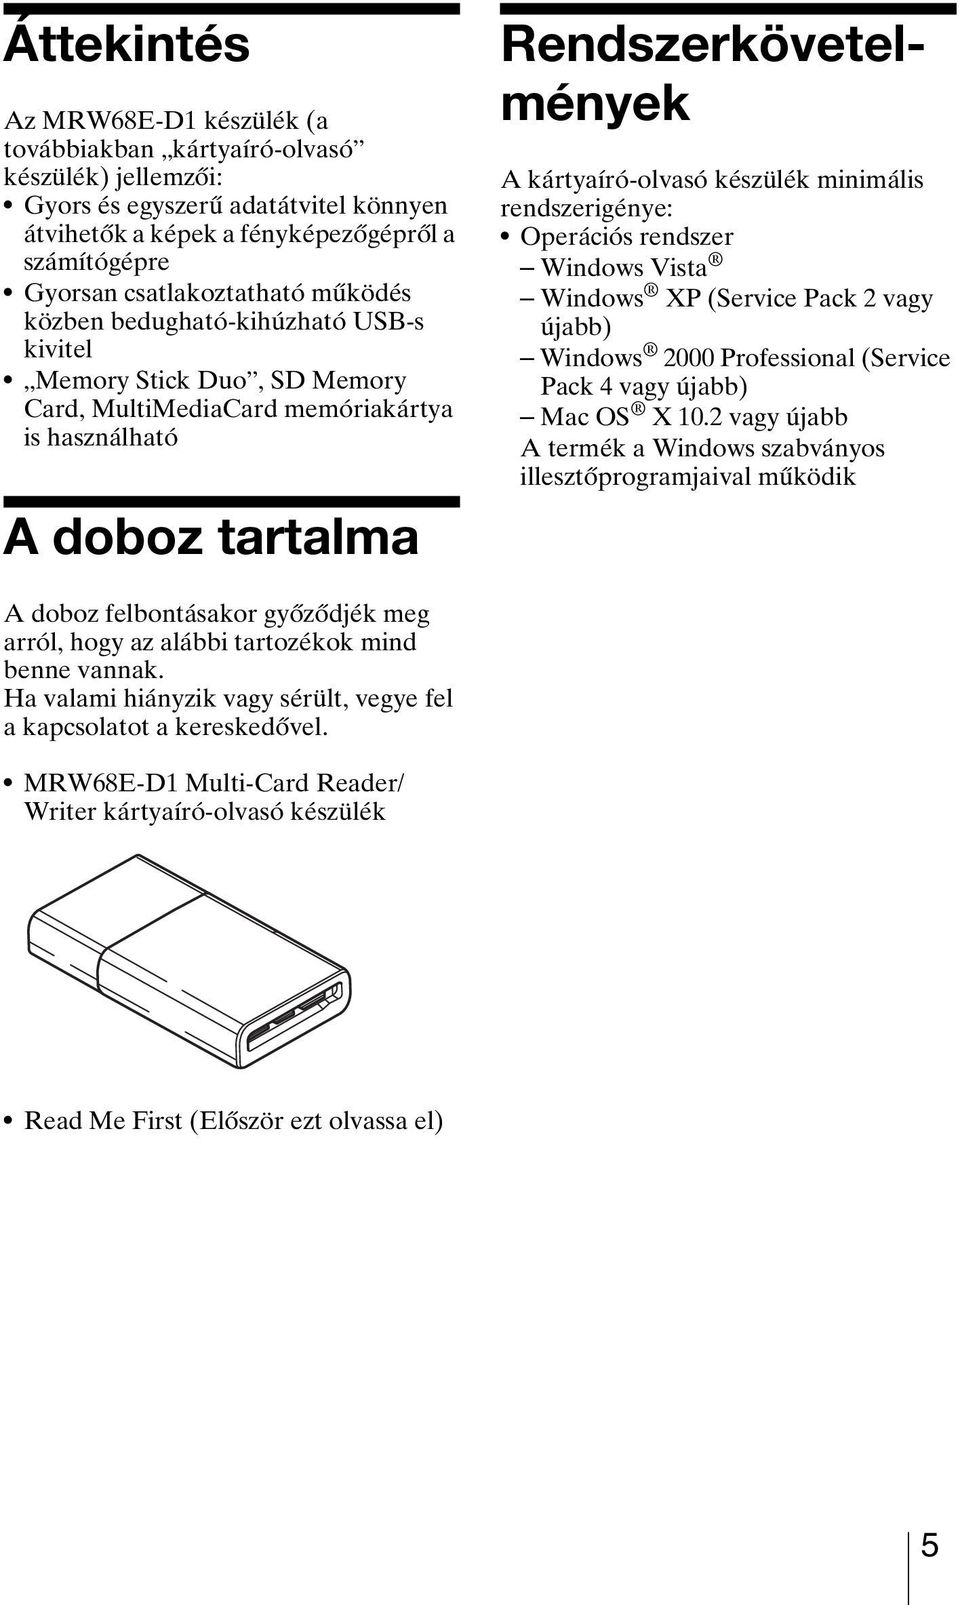 kártyaíró-olvasó készülék minimális rendszerigénye: Operációs rendszer Windows Vista Windows XP (Service Pack 2 vagy újabb) Windows 2000 Professional (Service Pack 4 vagy újabb) Mac OS X 10.